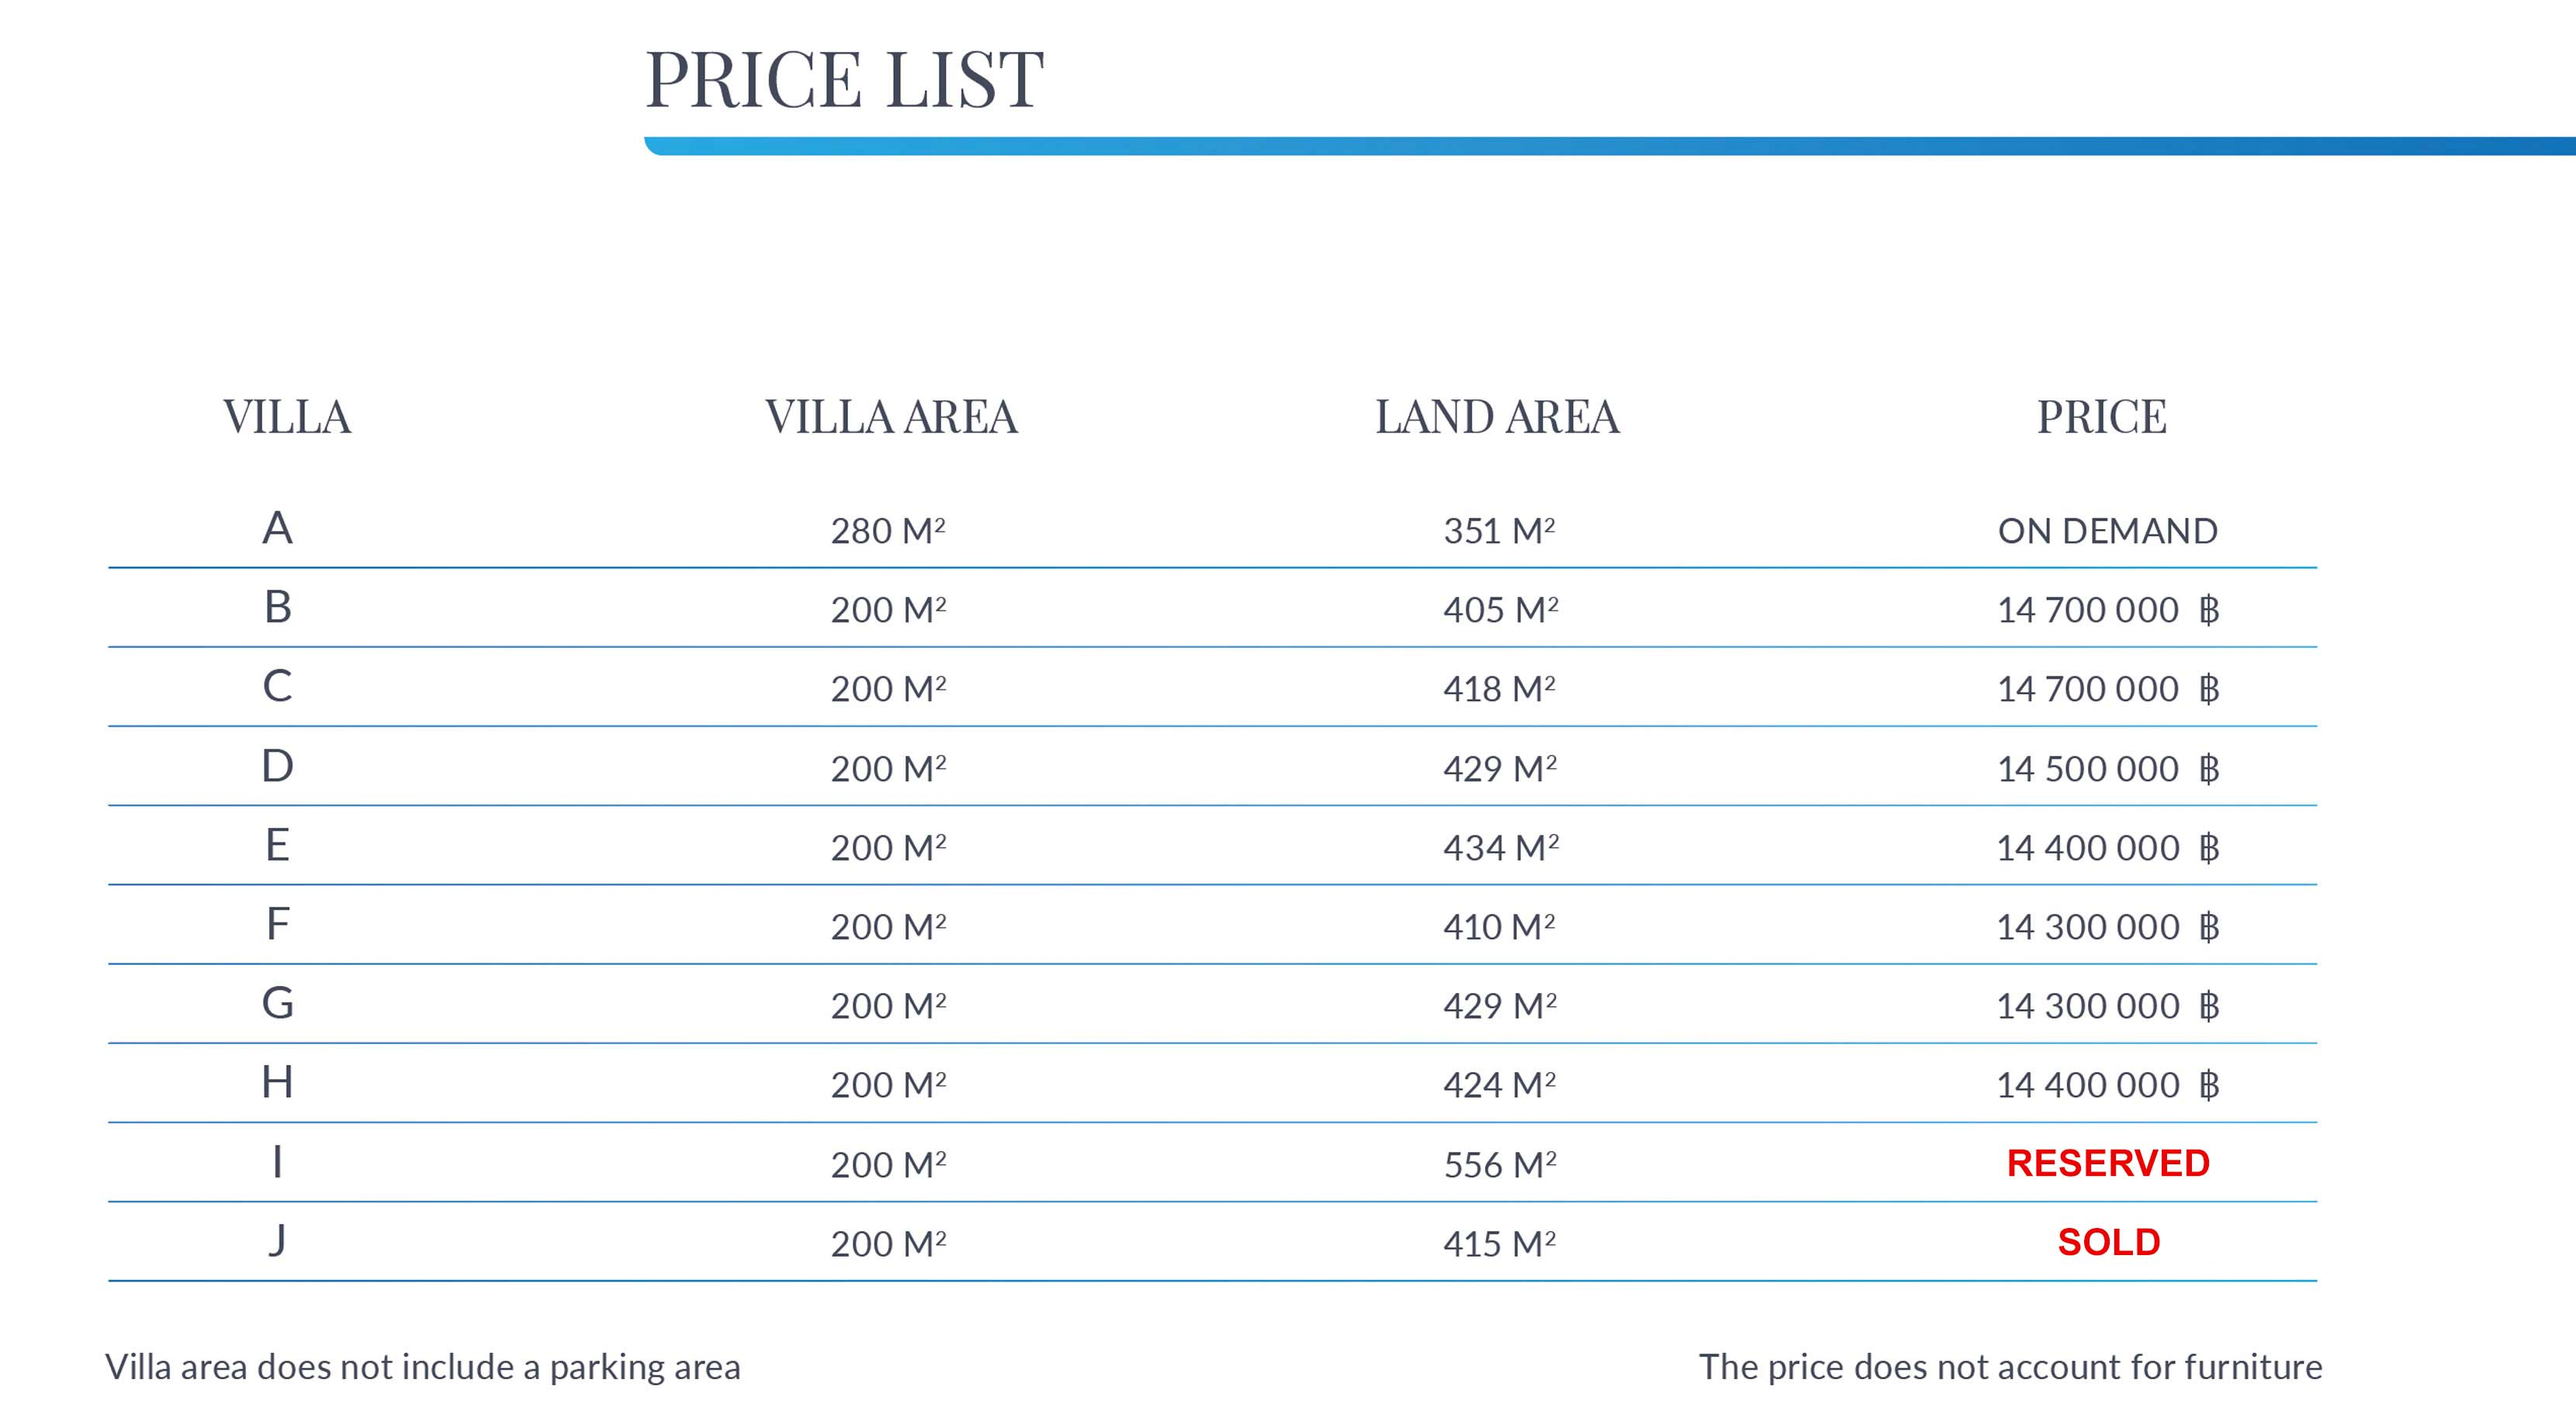 Villa Prices and Land Plot Sizes